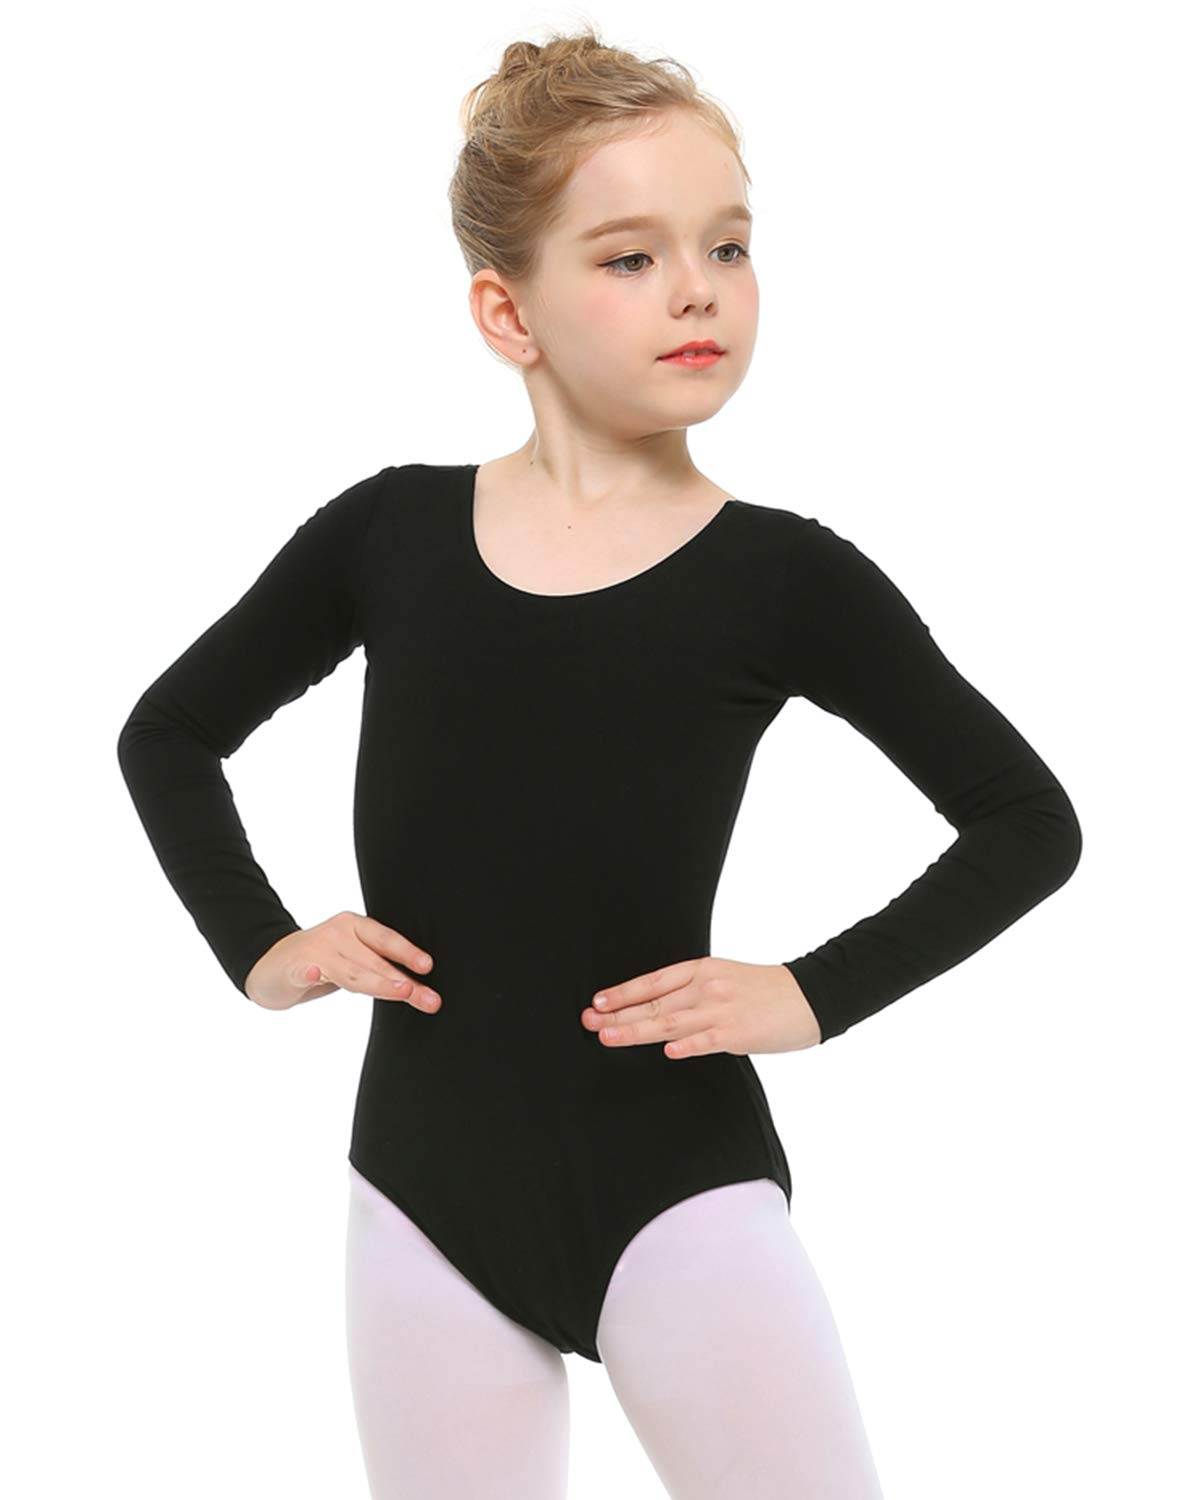 STELLE Girls Long Sleeve Team Basic Leotard Ballet Dance Gymnastics